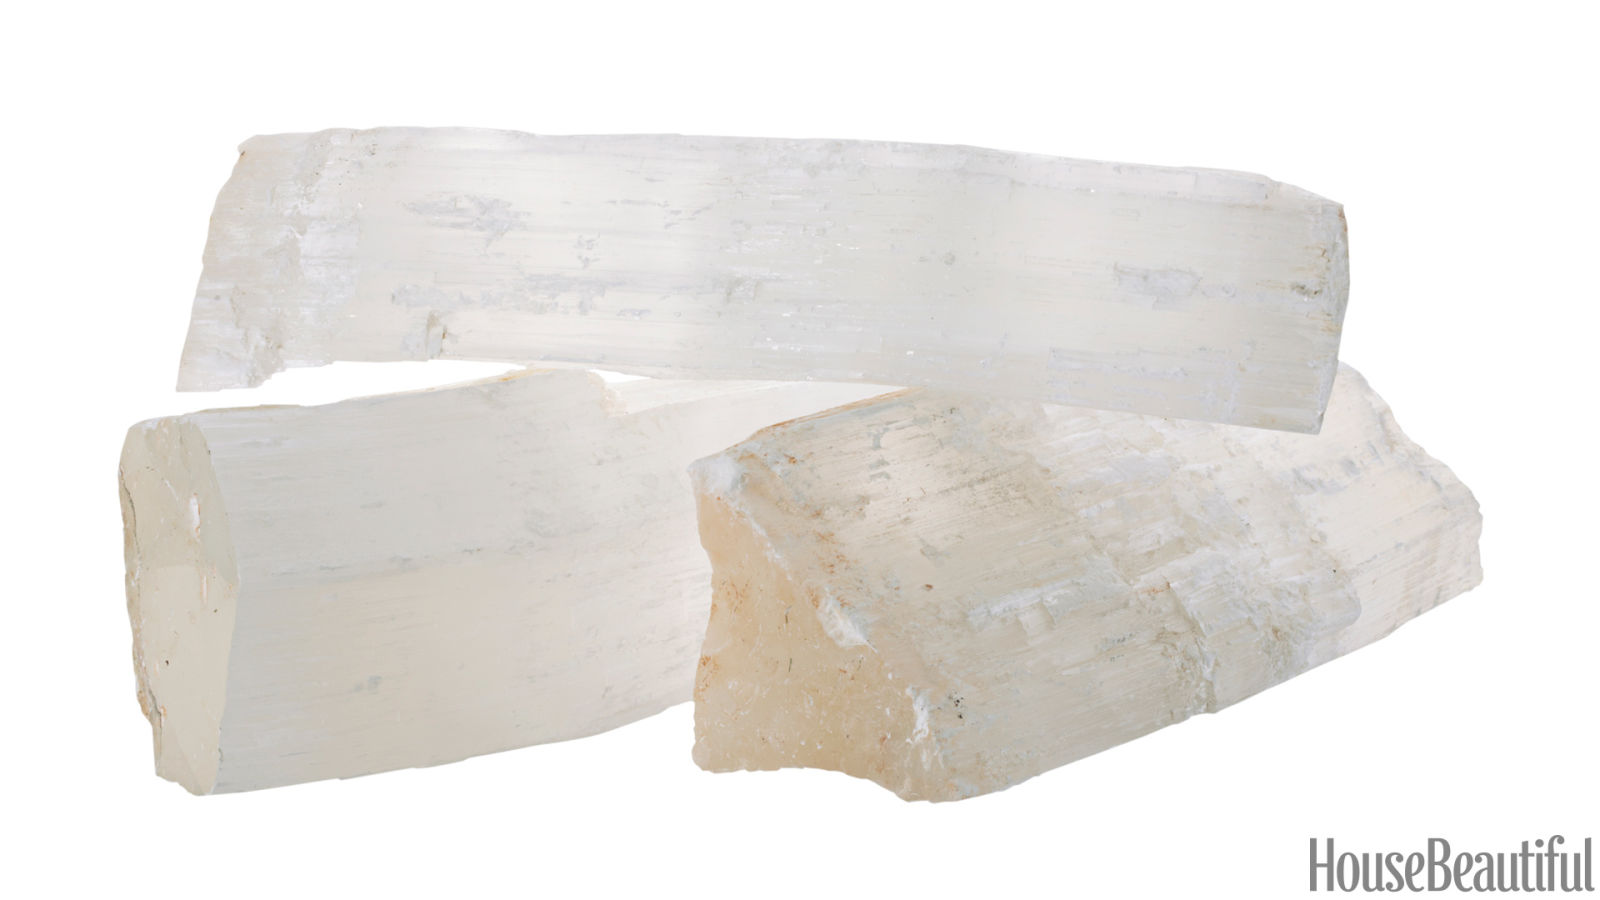 Selenite C-Clamp Side Table.jpg   Table, Home decor, Table ...  Decorating With Selenite